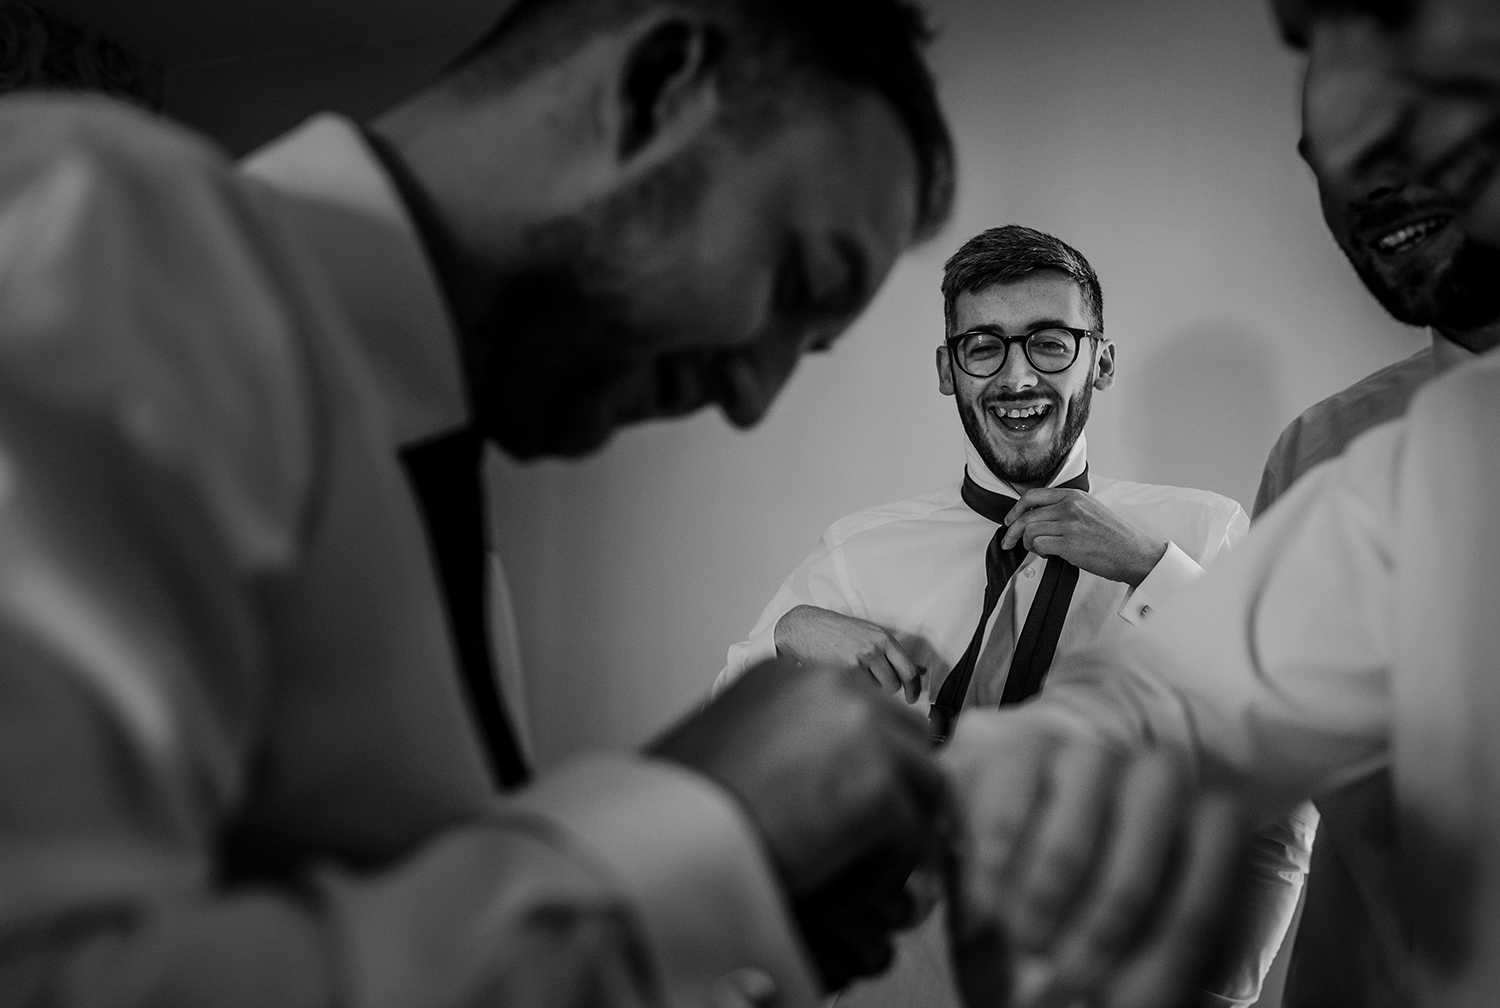 bw photo of the groomsmen getting ready